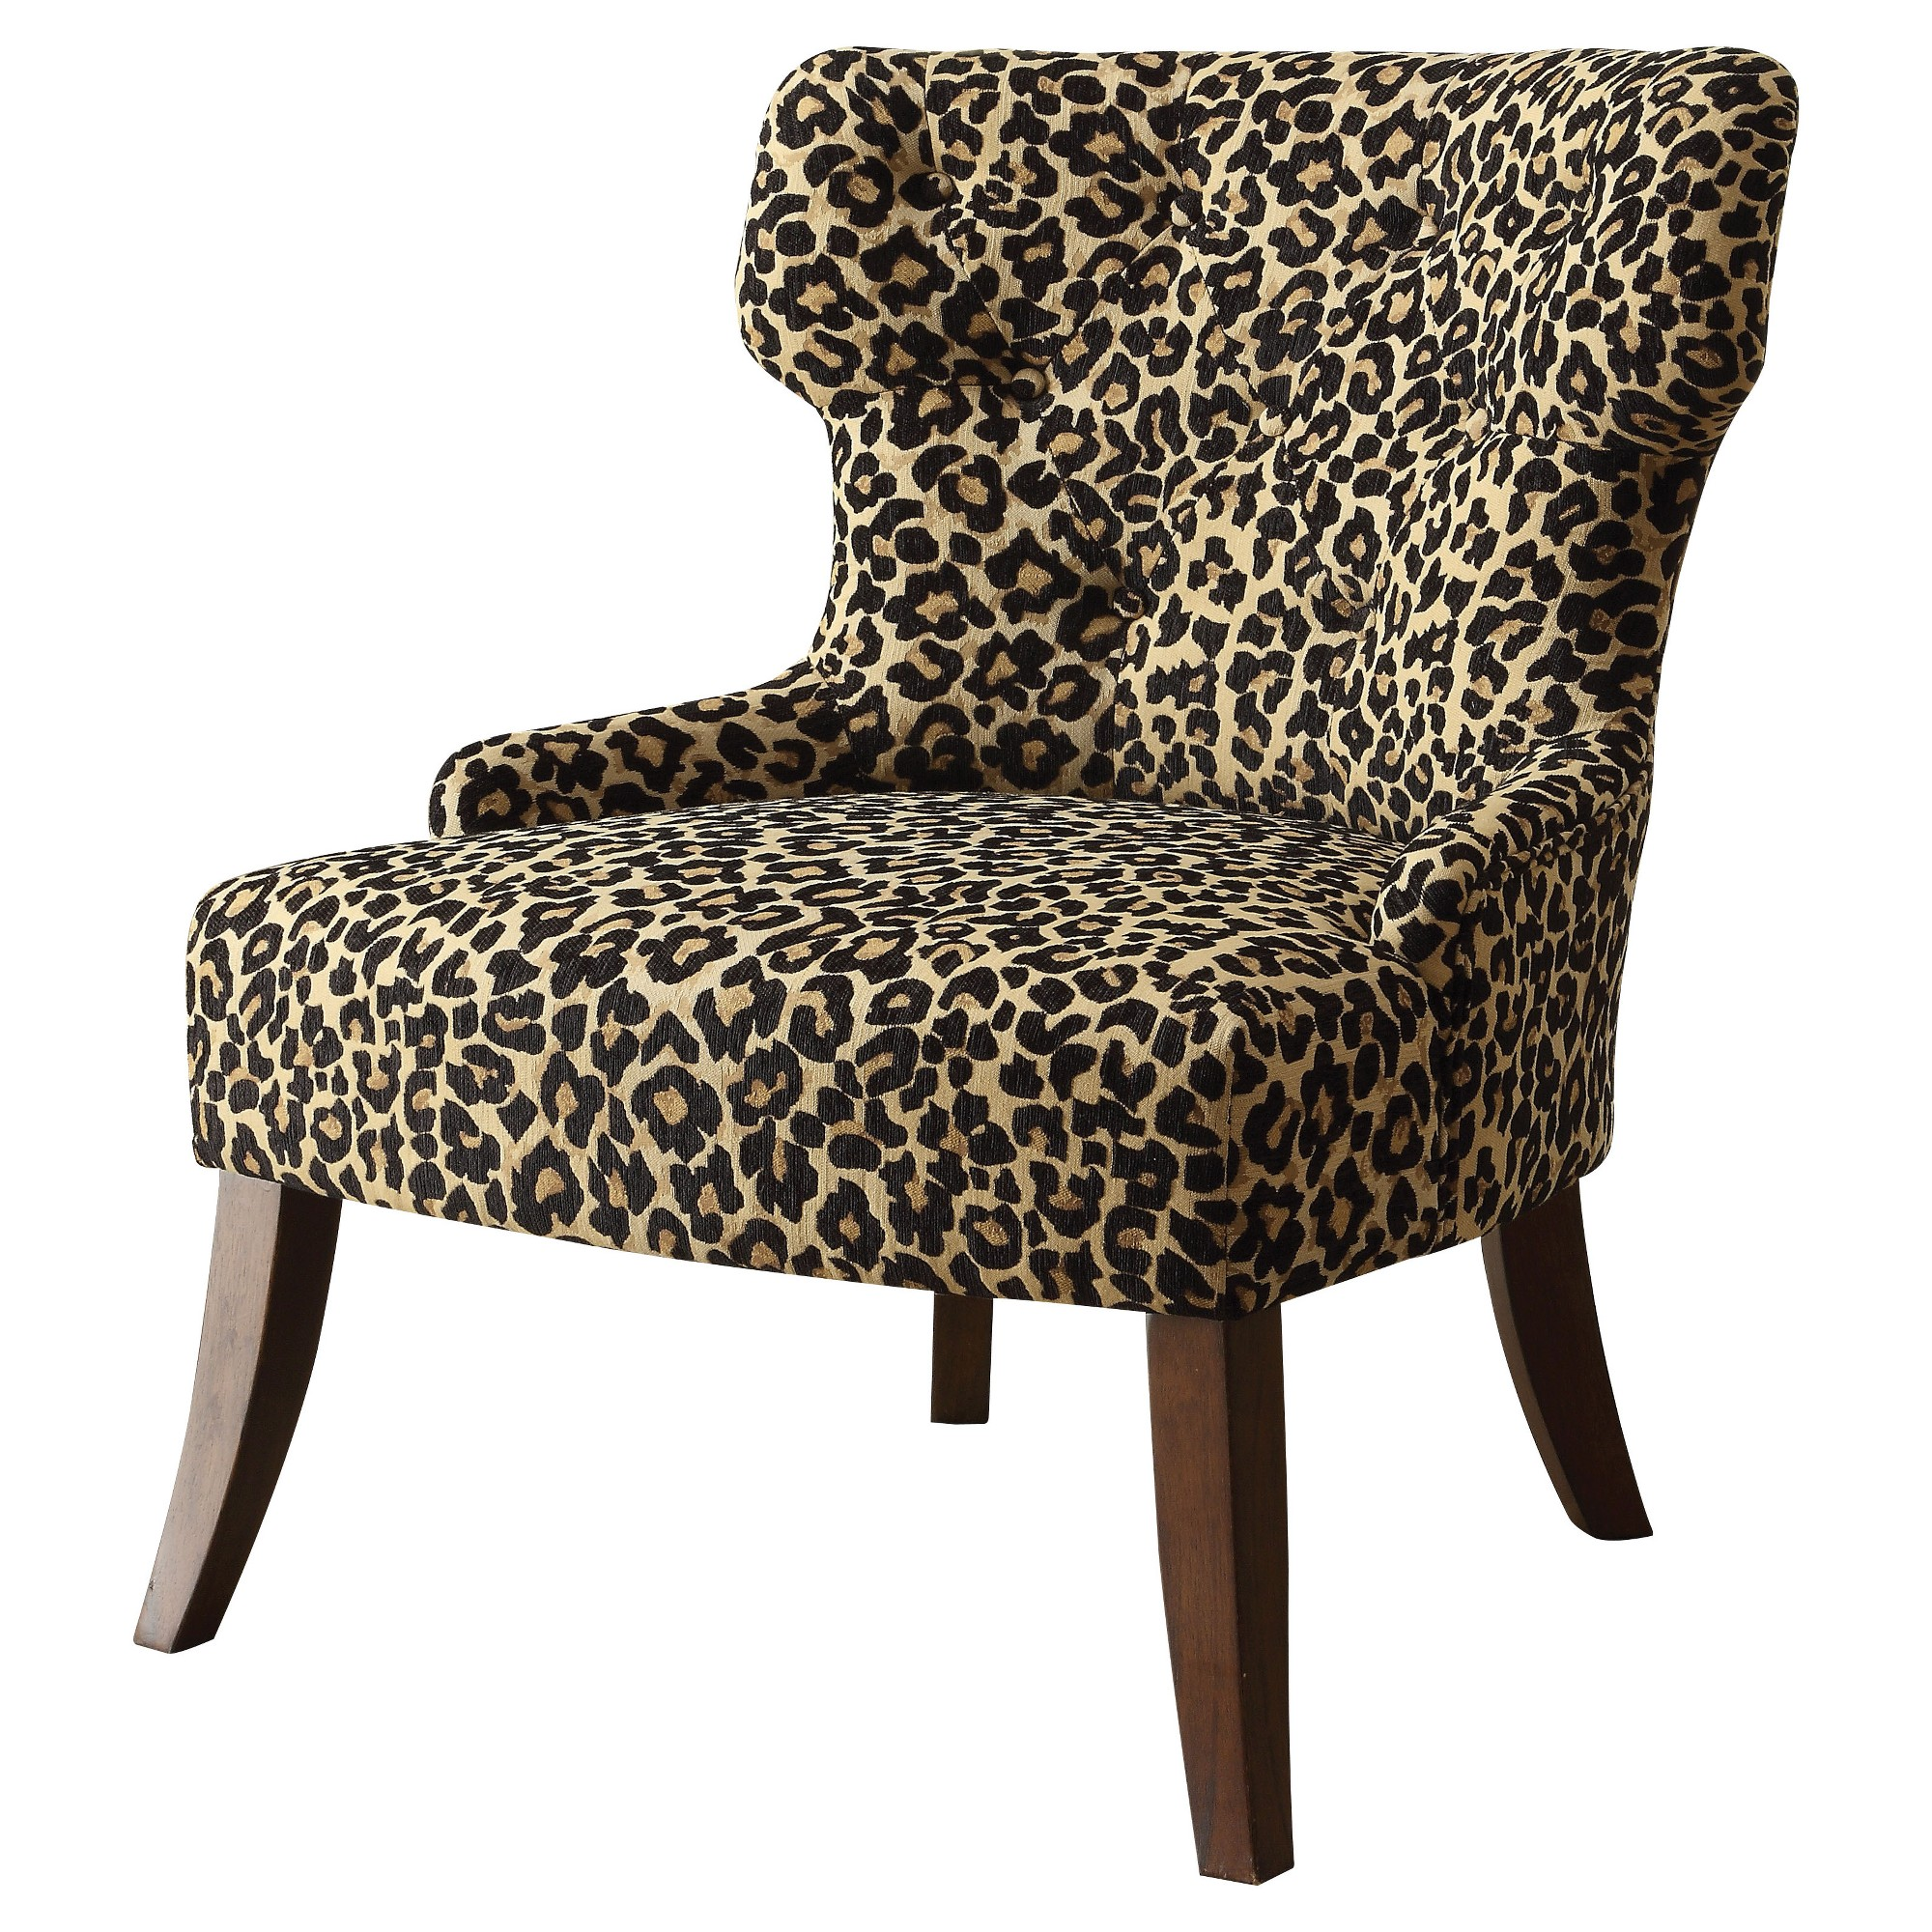 Marvelous Accent Chairs Acme Furniture Brown Black Products Forskolin Free Trial Chair Design Images Forskolin Free Trialorg